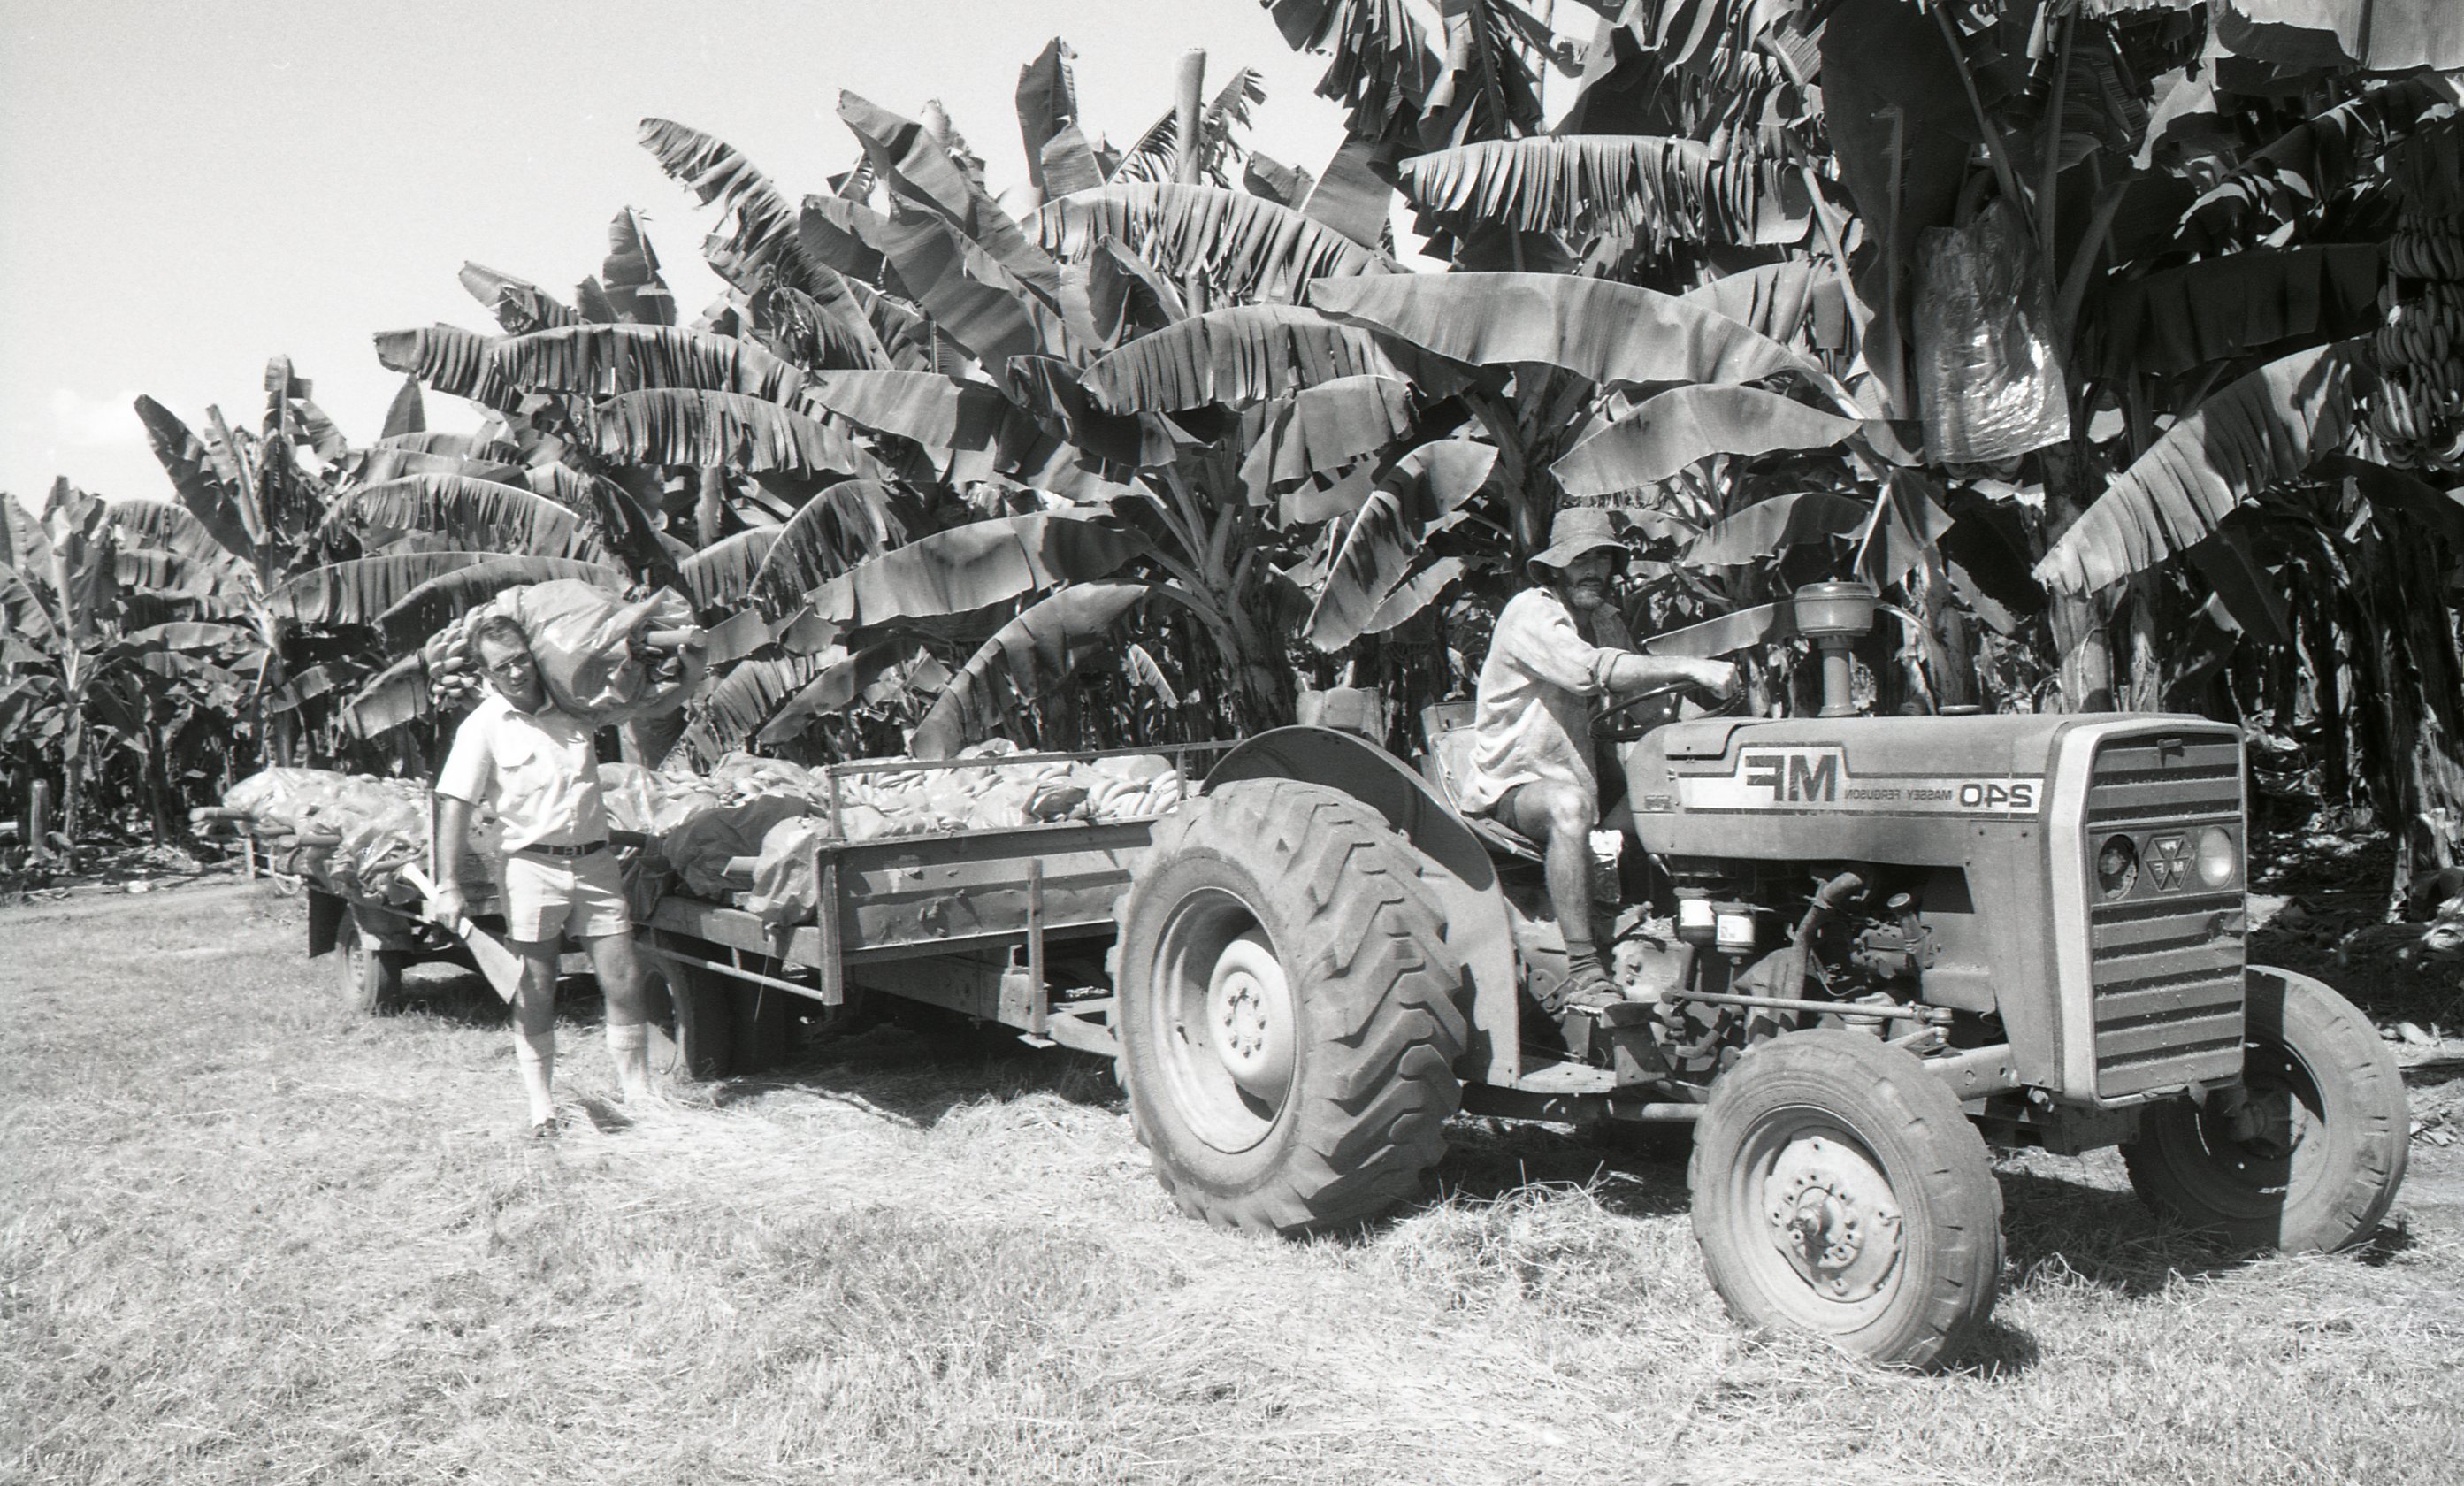 DJ Cormack's banana farm, Humpty Doo, 15 May 1989<br />Image courtesy of Library & Archives NT,  Department of the Chief Minister, NTRS 3823 P1, Box 11, BW2824, Image 21